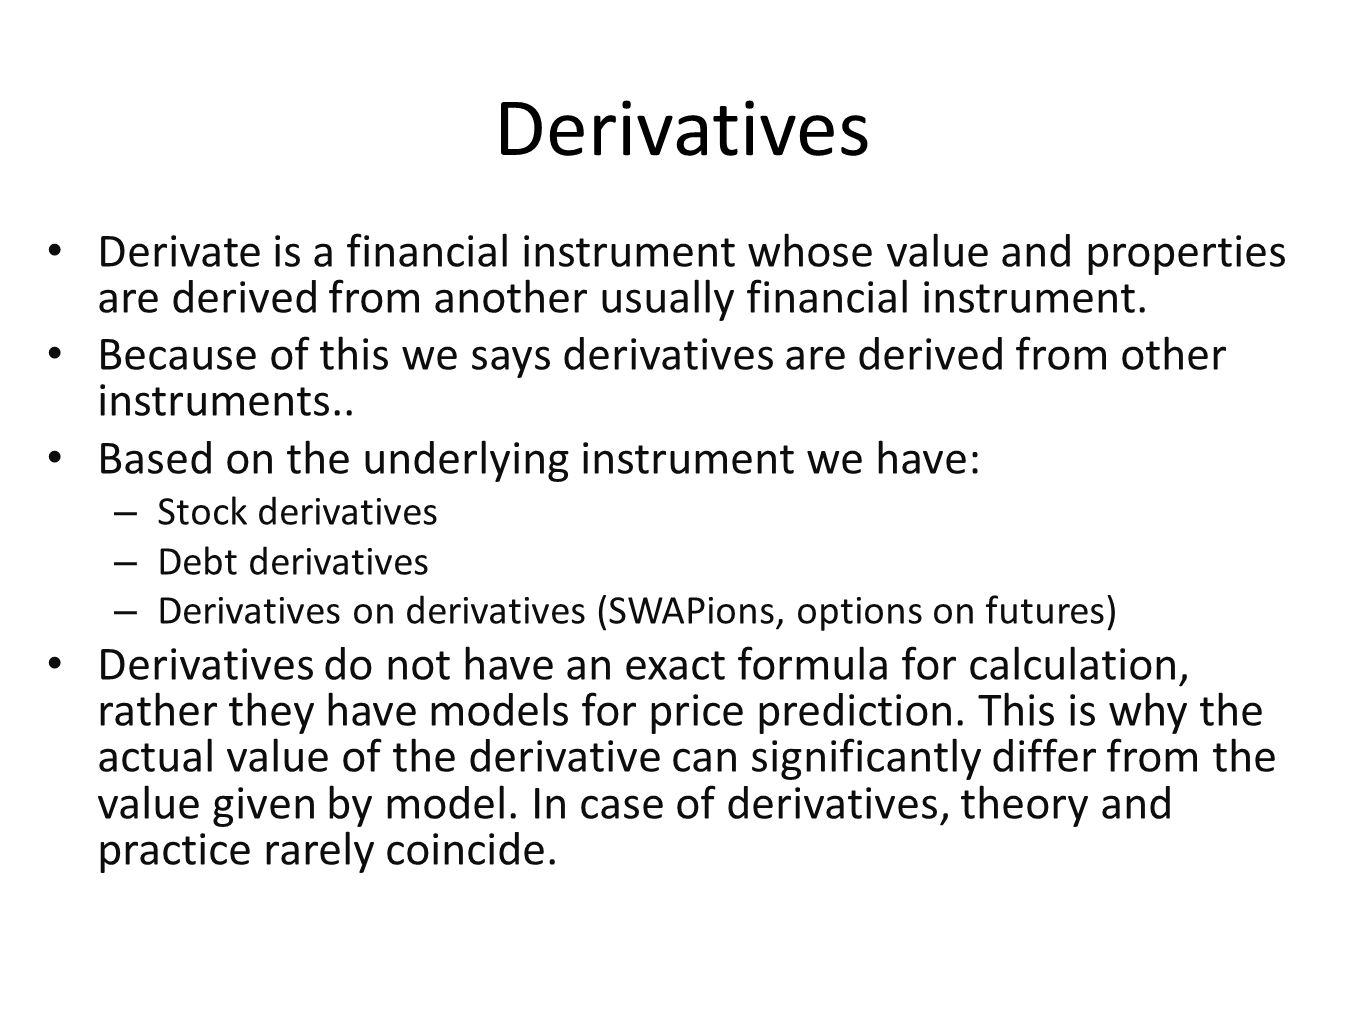 Derivatives Derivate is a financial instrument whose value and properties are derived from another usually financial instrument.